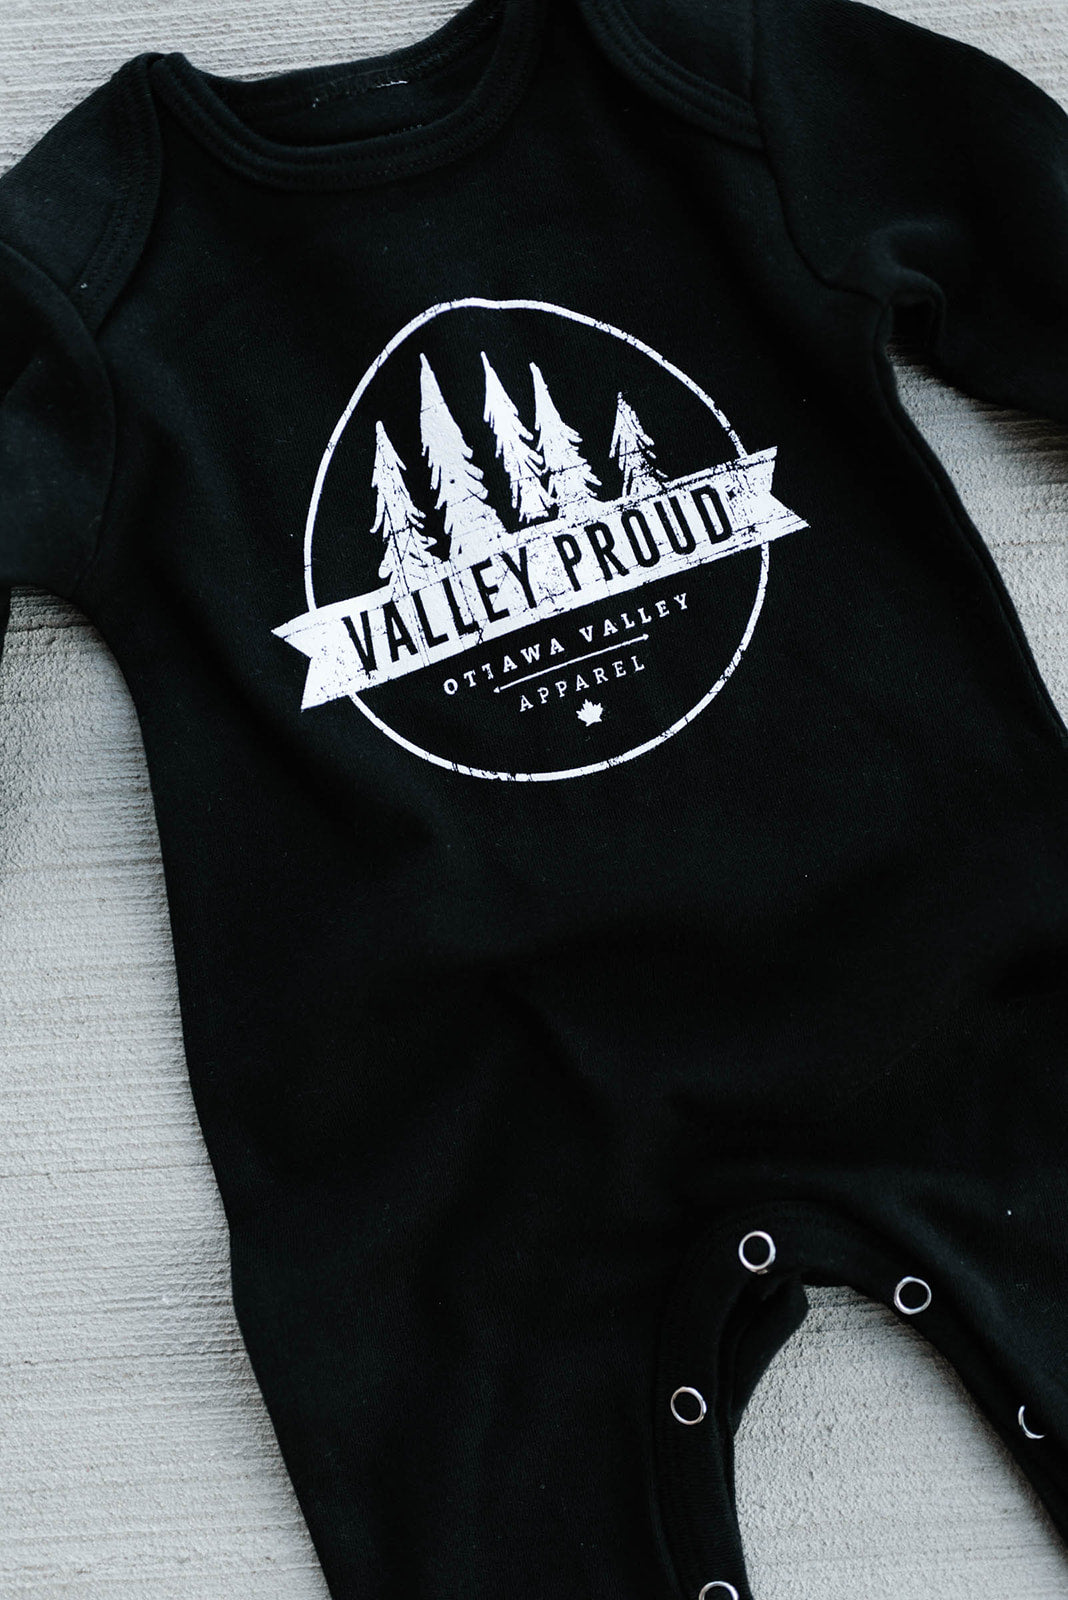 Valley Proud Baby Romper - Black